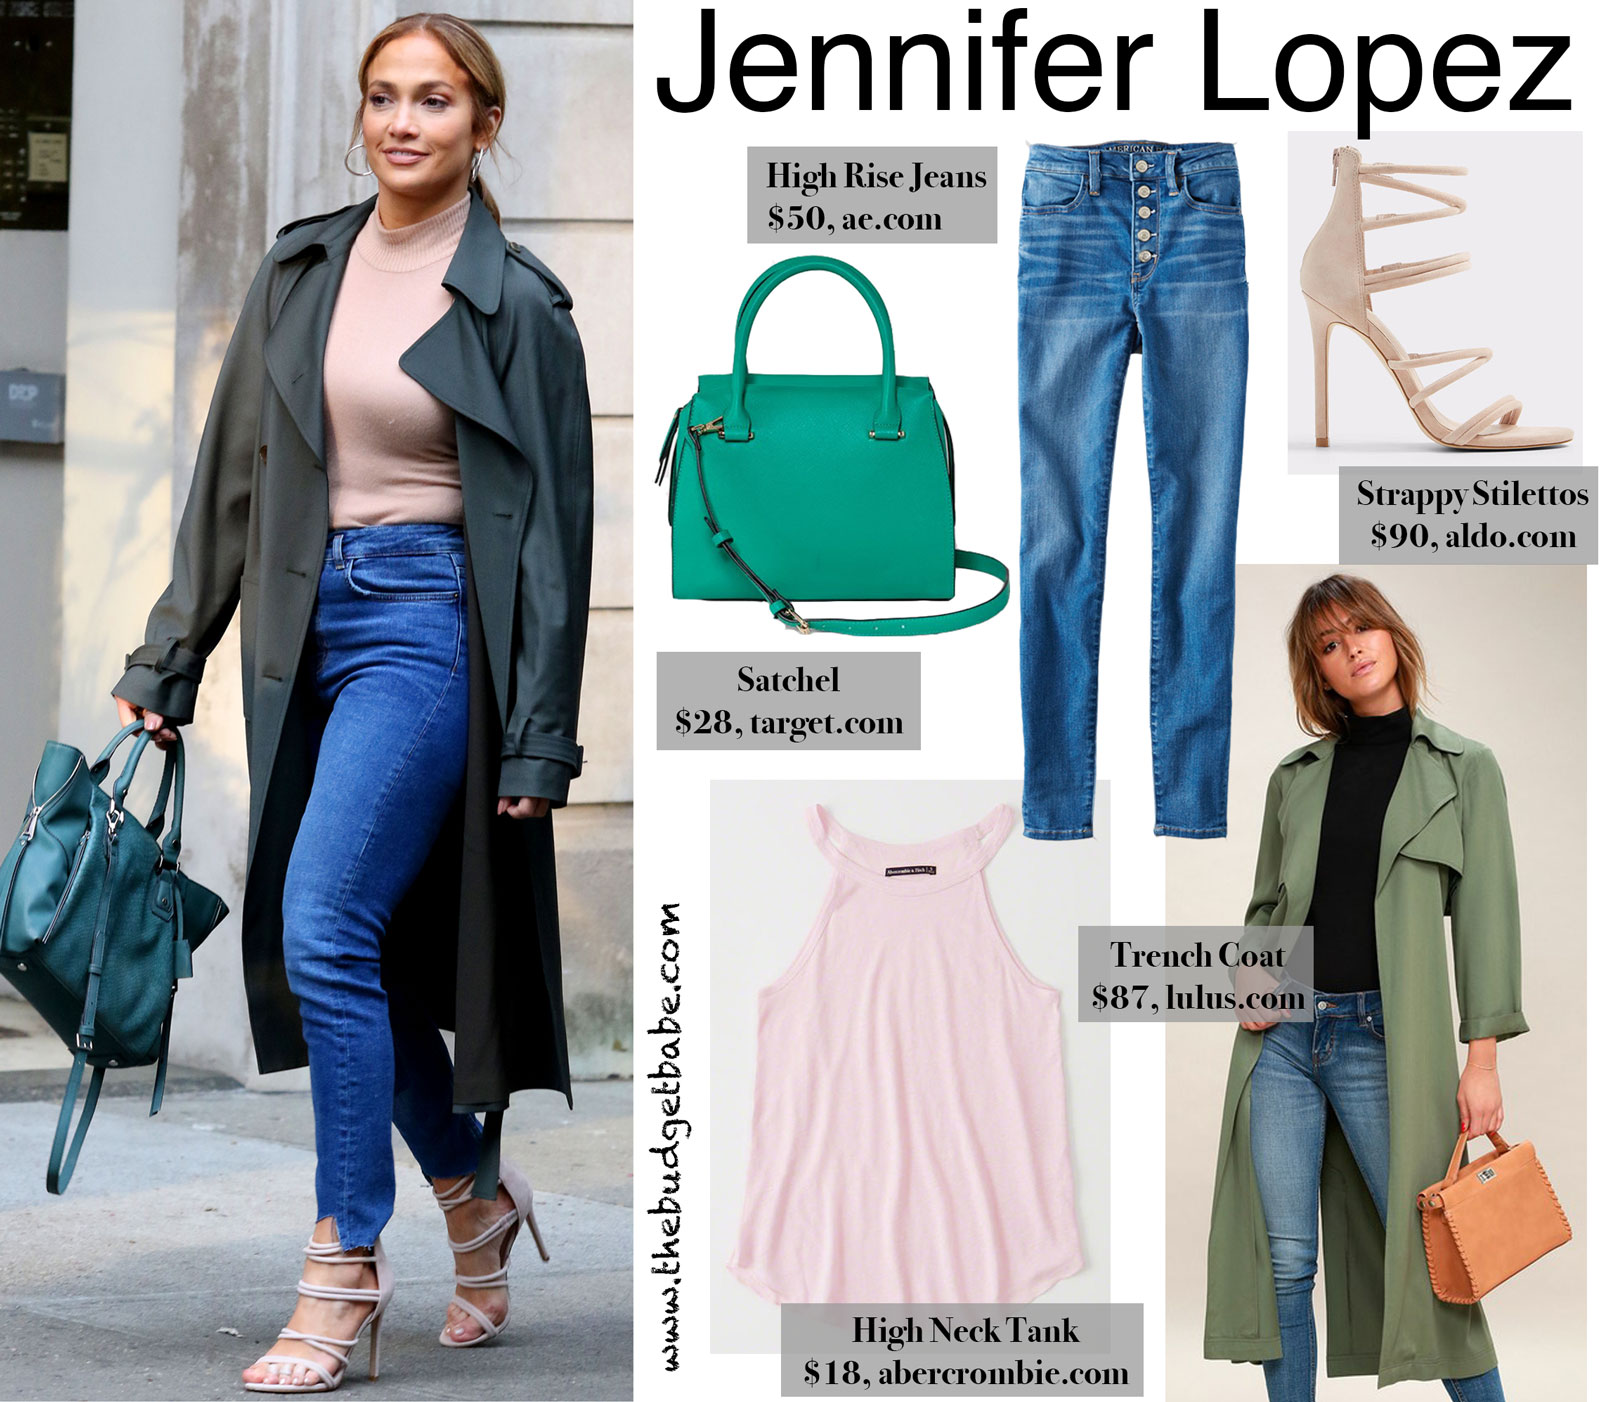 Jennifer Lopez Green Trench Coat and Satchel Look for Less